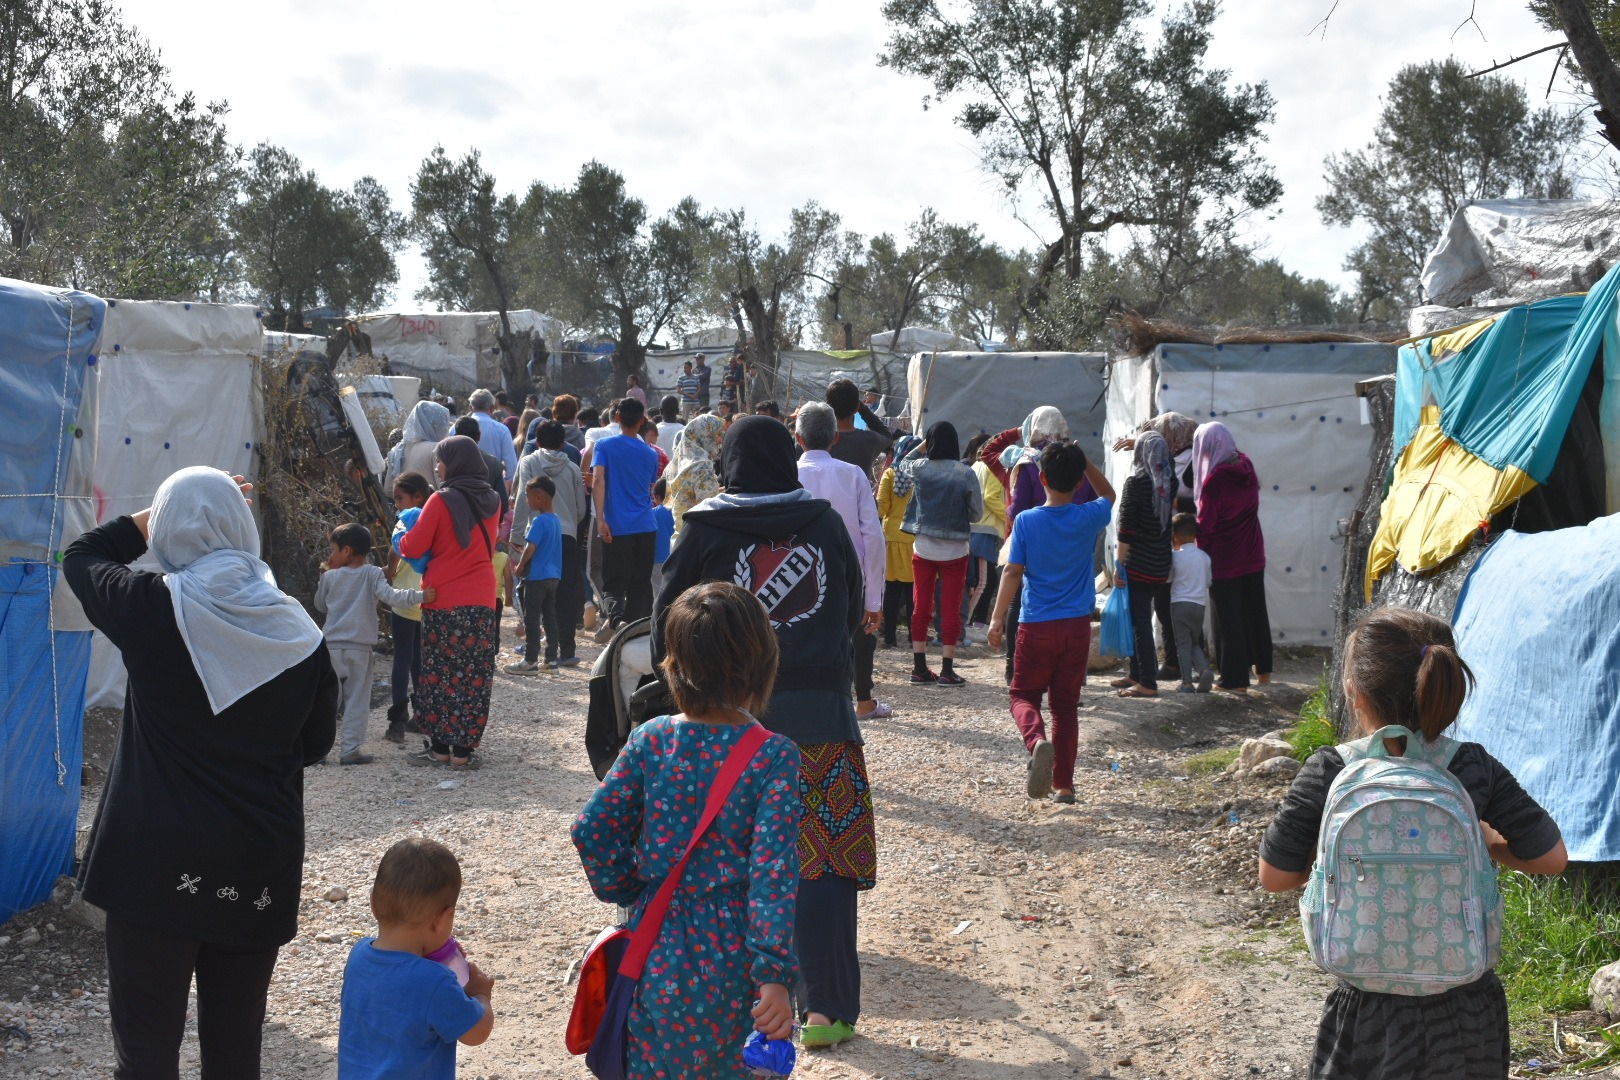 CONFIRMATION OF COVID-19 IN MORIA CAMP LEADS TO IMMEDIATE TRANSFORMATION TO A CLOSED CENTRE, FOLLOWING FIVE MONTHS OF DELIBERATE FAILURE OF EUROPEAN MEMBER STATES TO RESPOND TO FORESEEABLE AND PREVENTABLE DISASTER